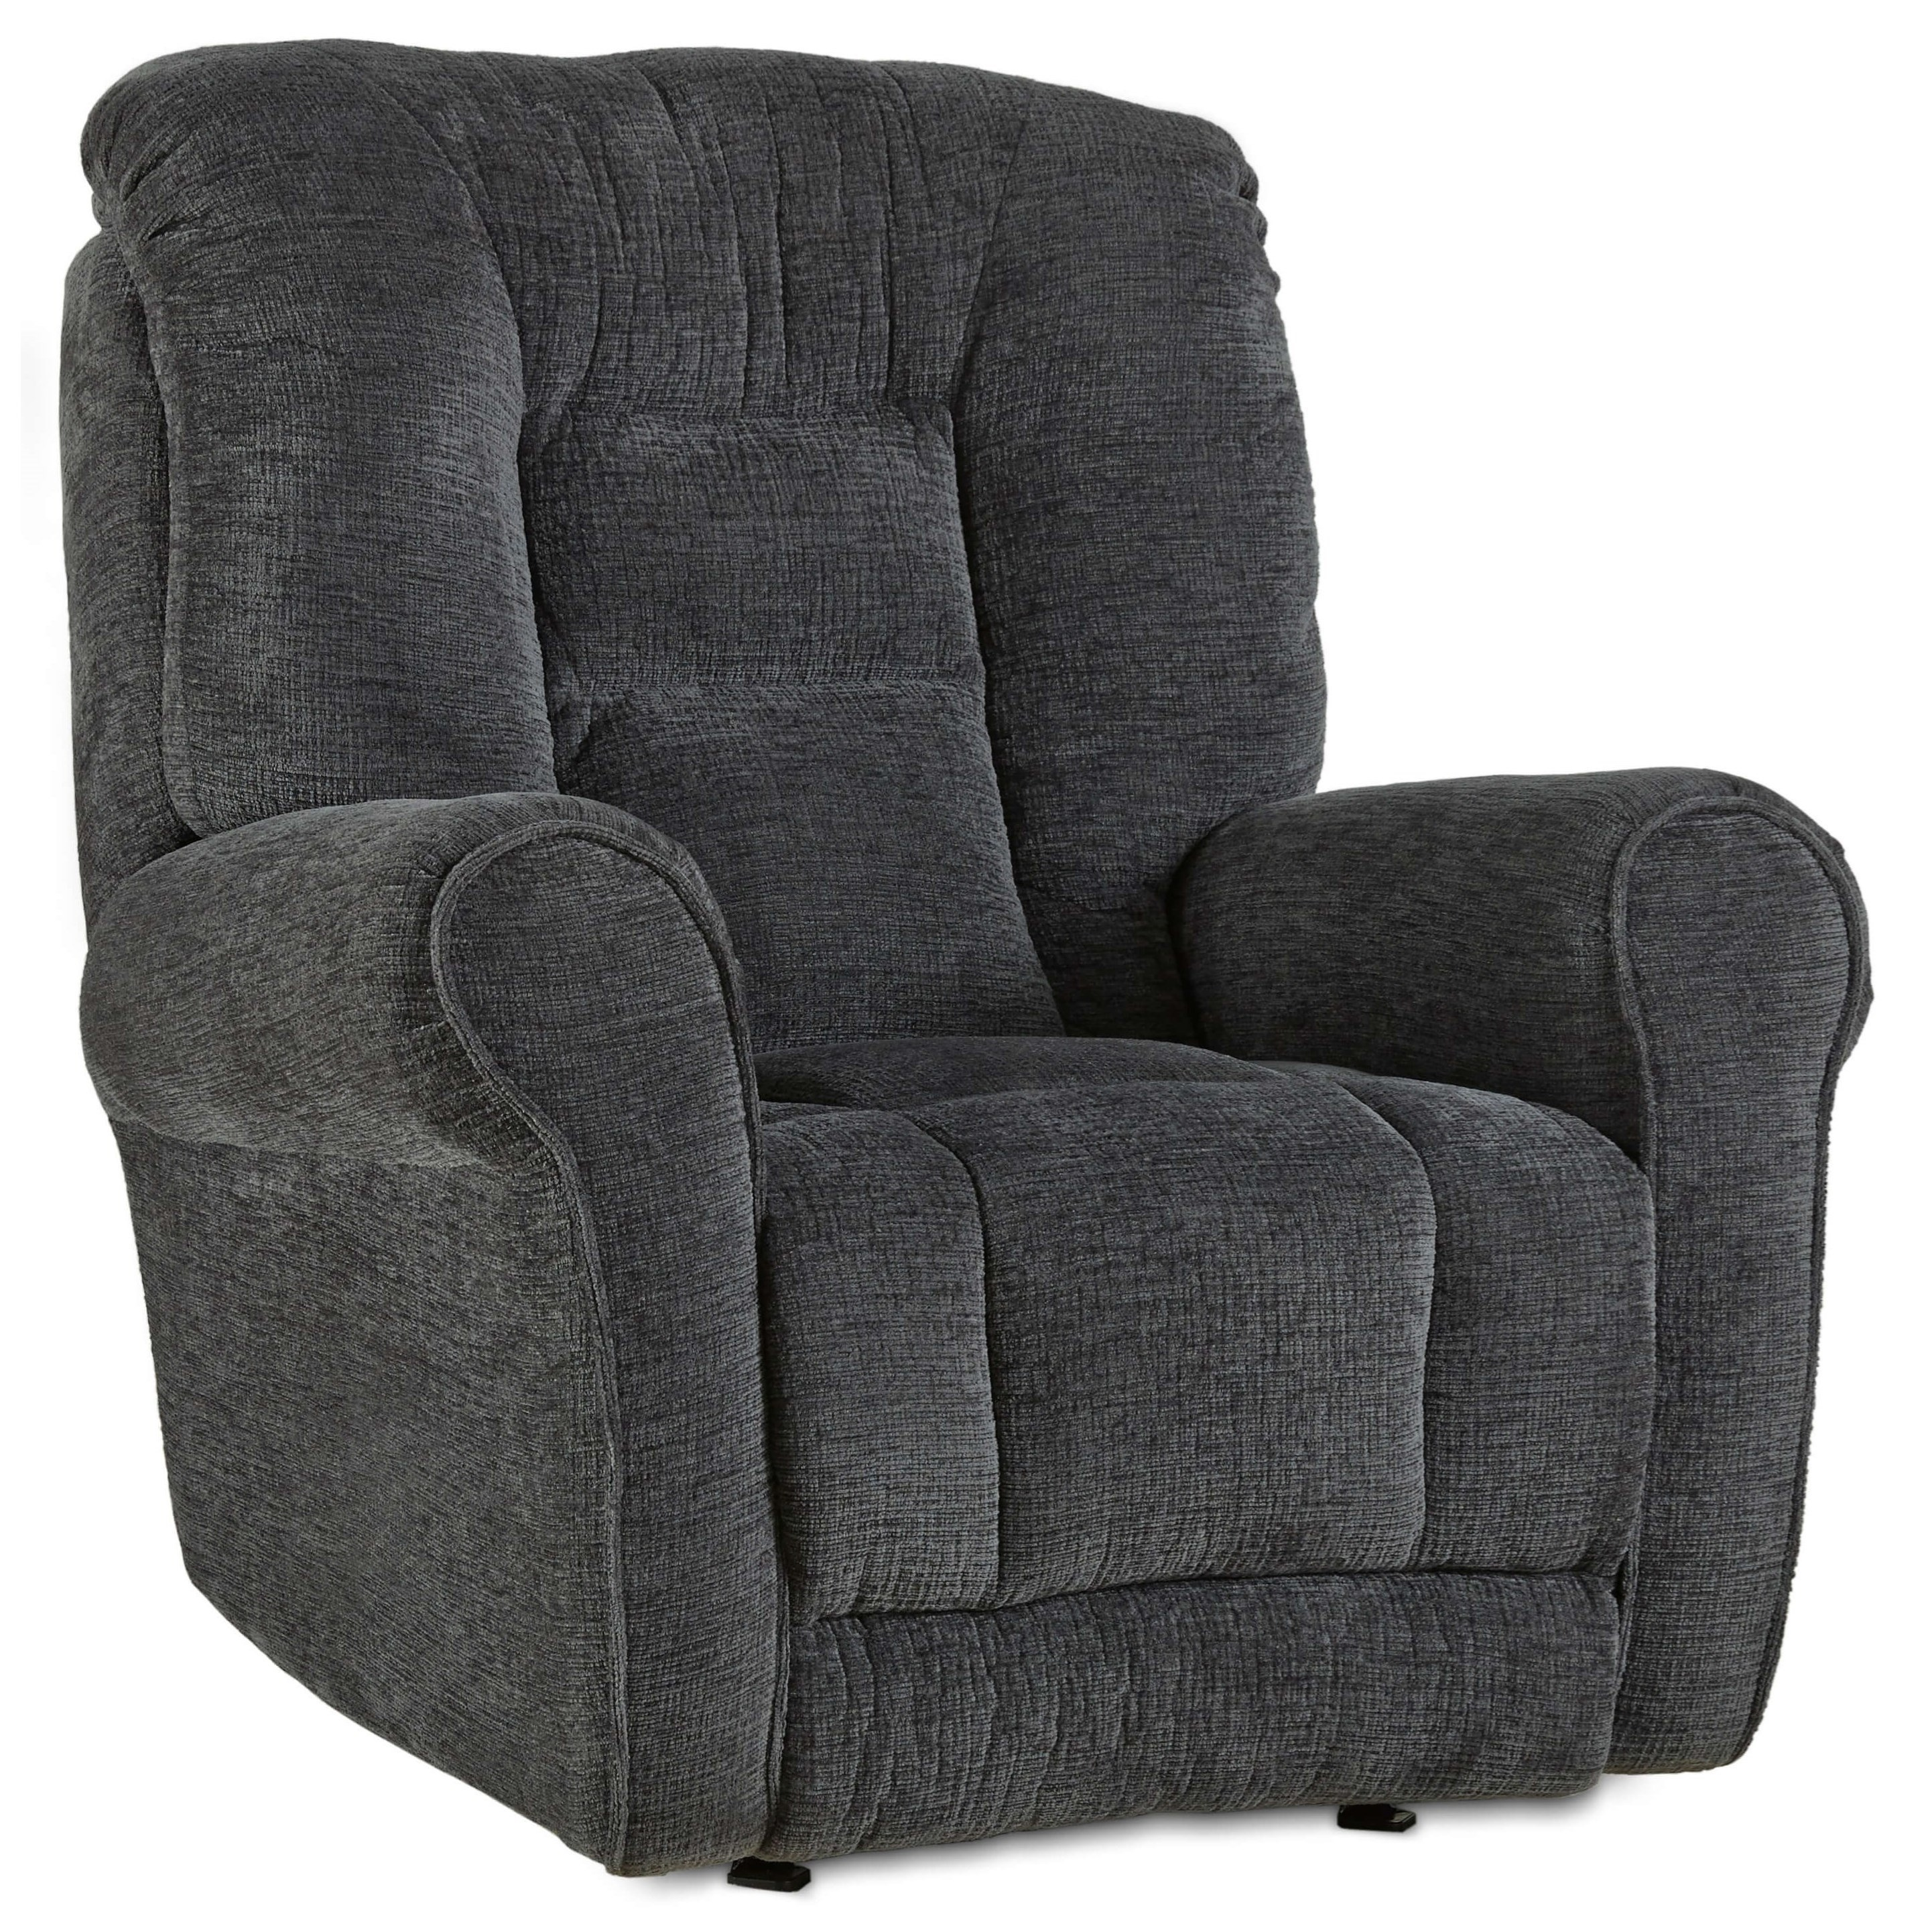 recliner chairs that lift. Southern Motion GrandLift Recliner Chairs That Lift H